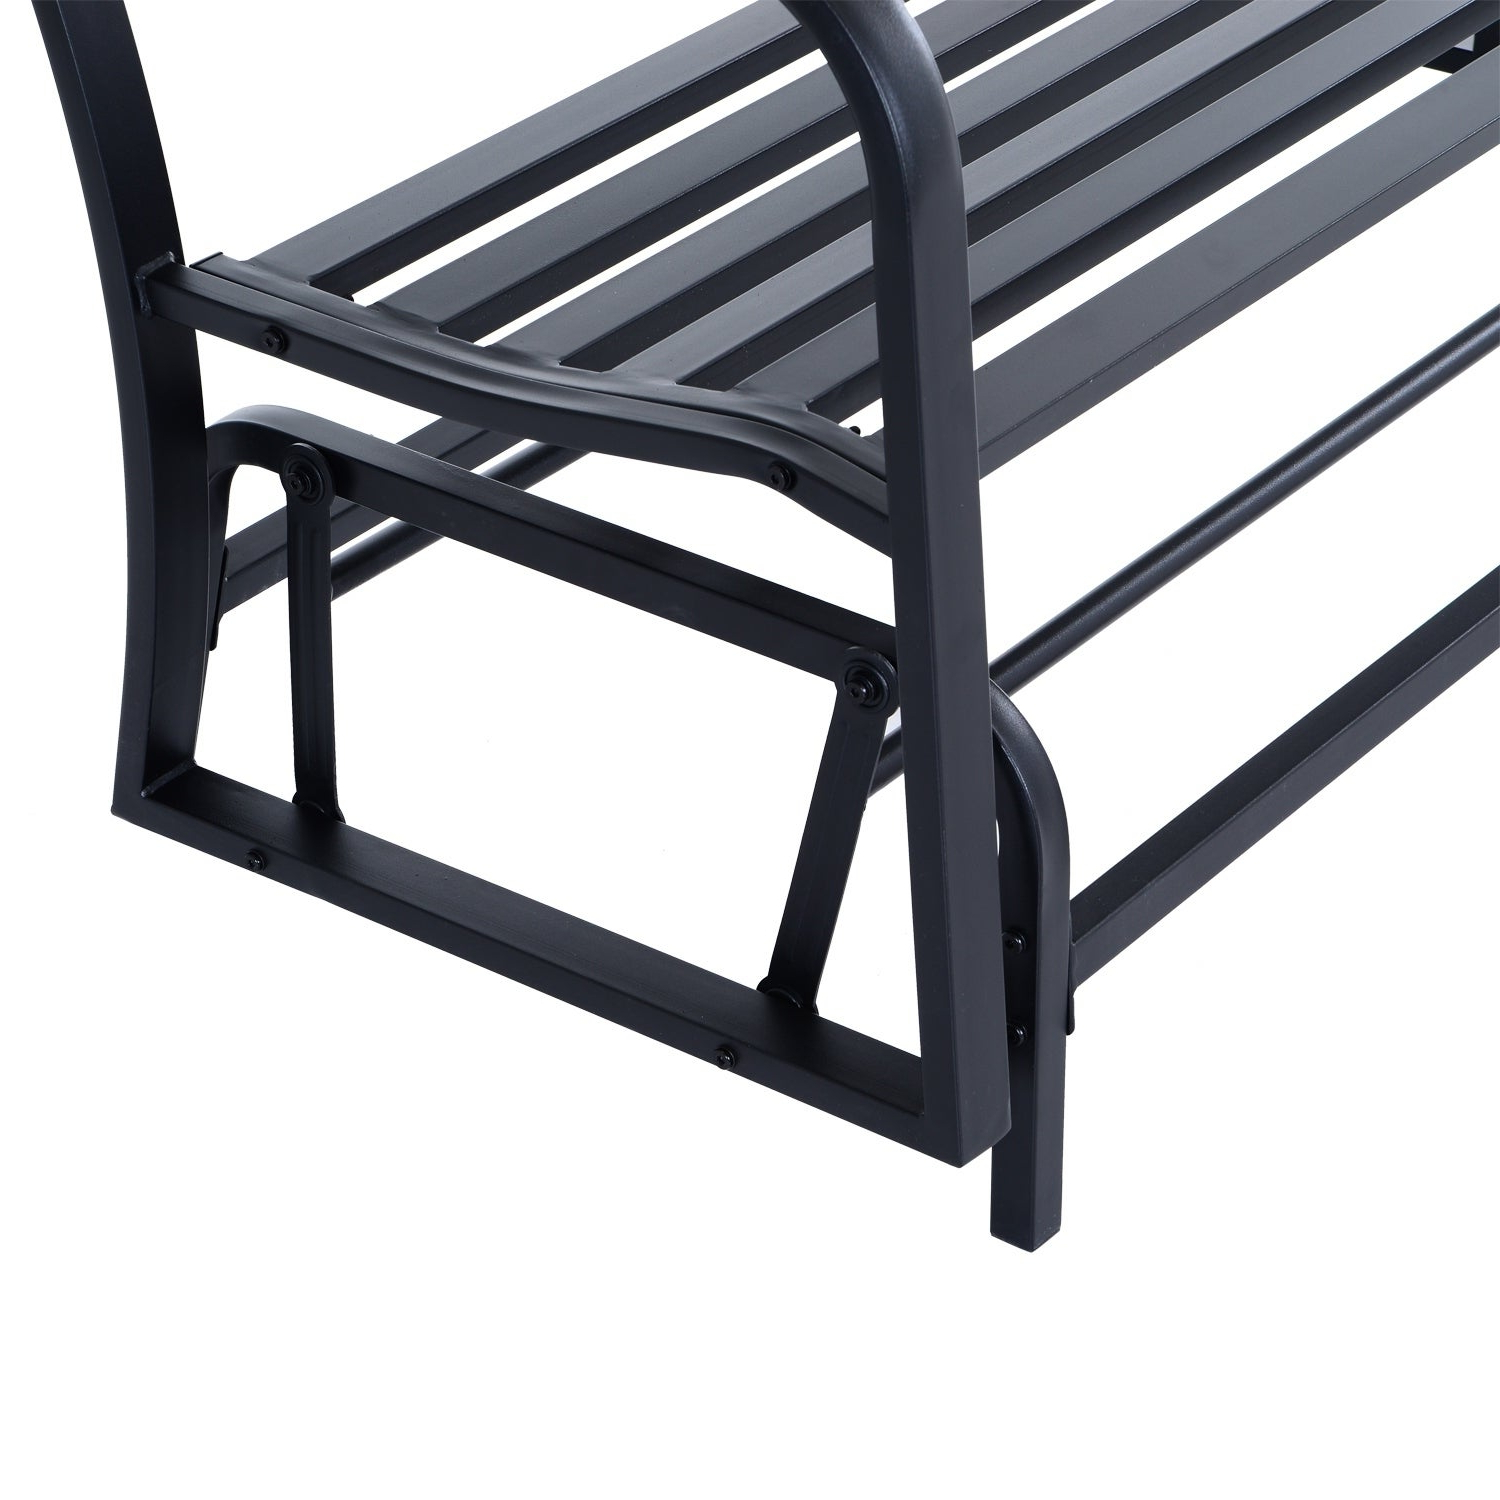 Fashionable Outsunny 50 Inch Outdoor Steel Patio Swing Glider Bench – Black Intended For Steel Patio Swing Glider Benches (View 6 of 25)